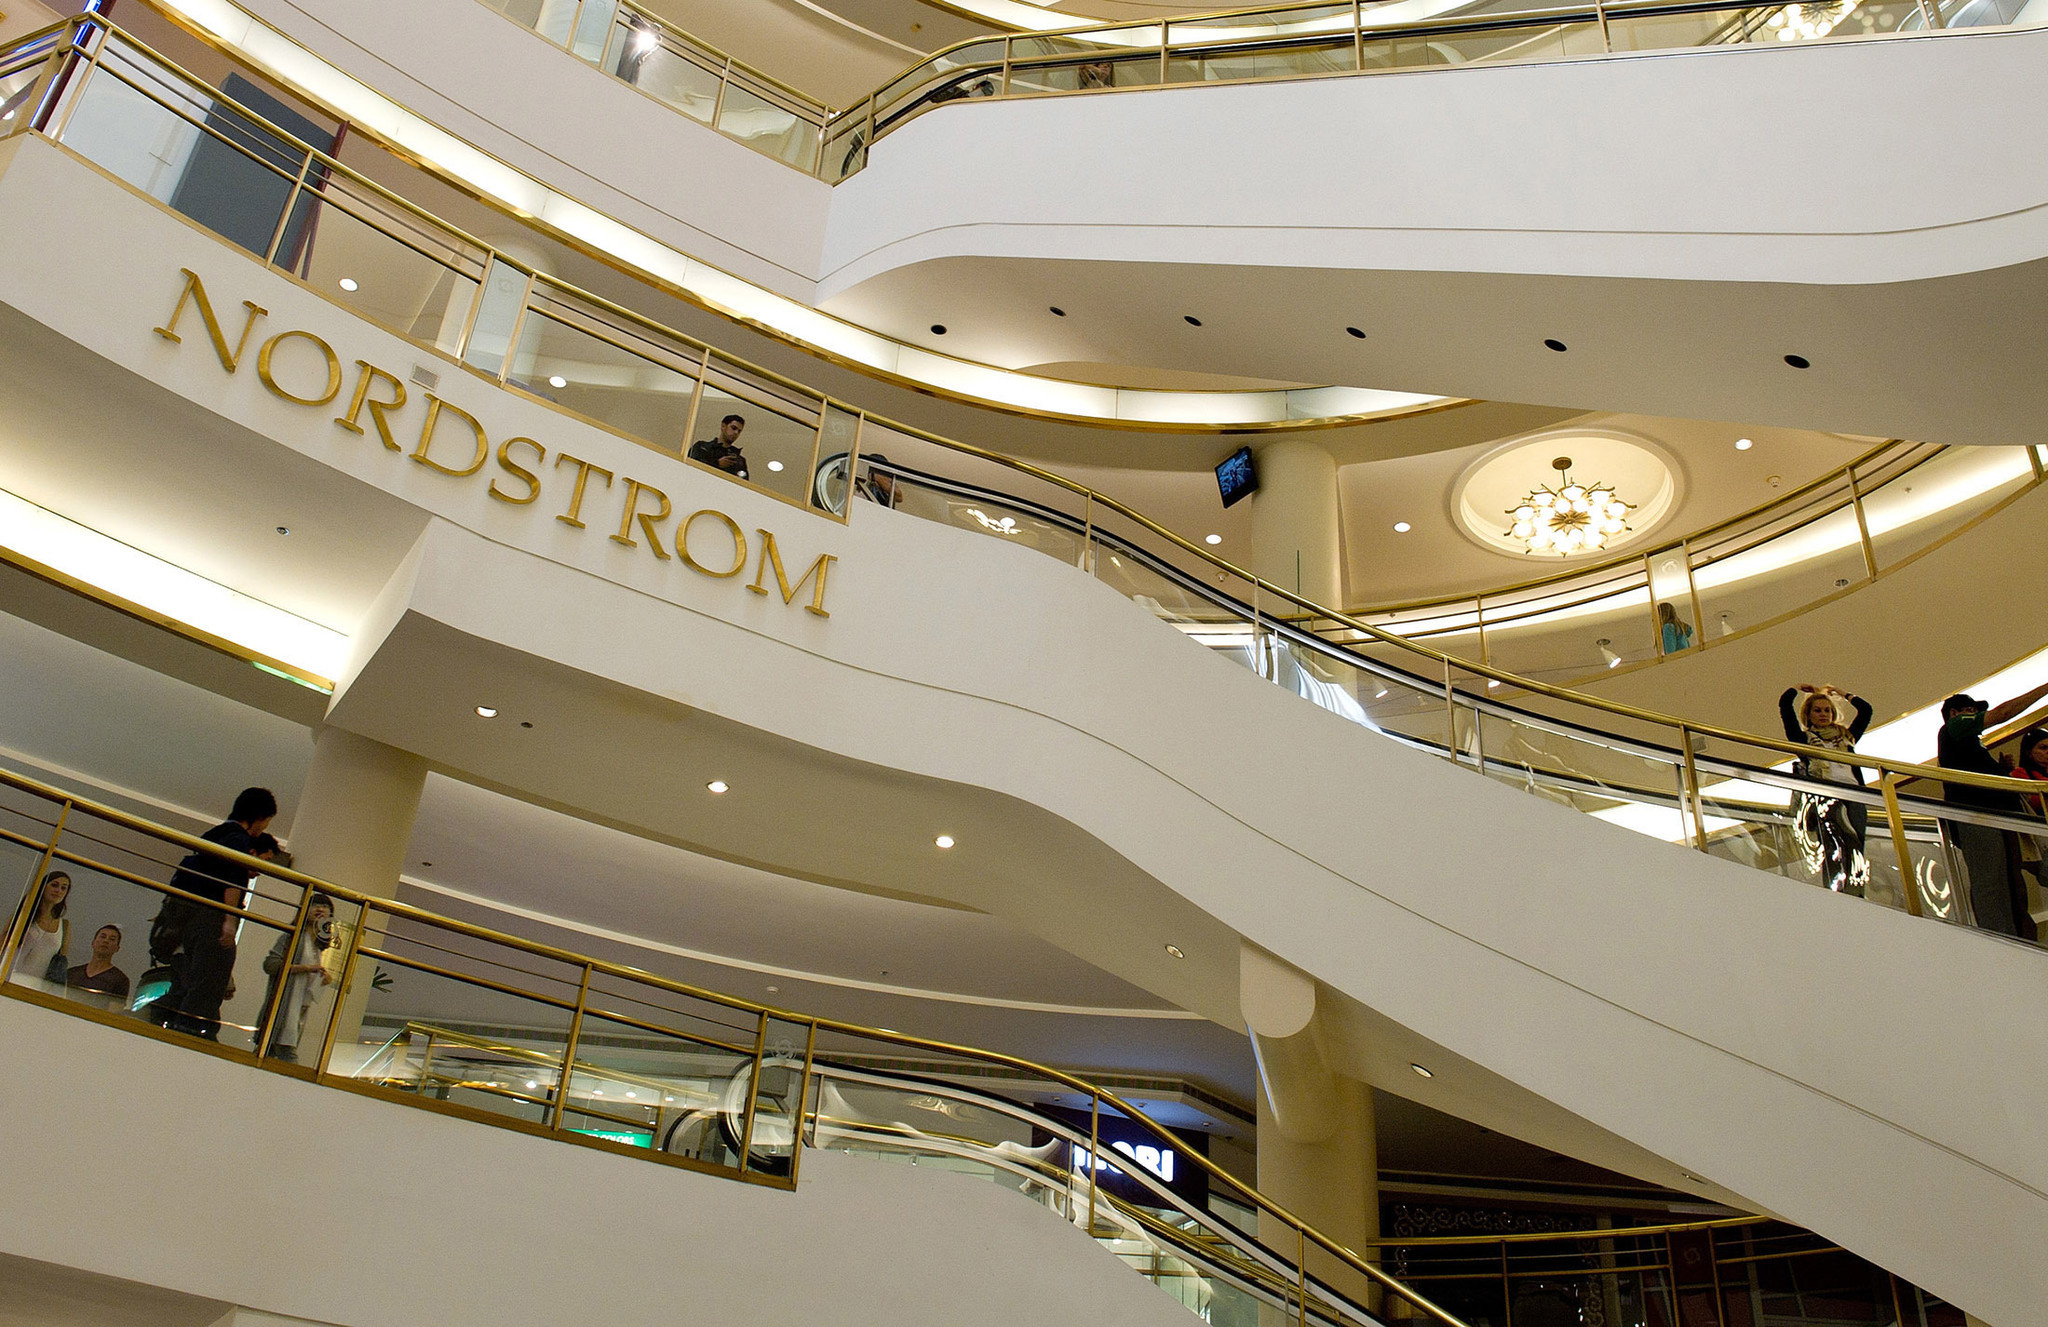 http://www.chicagotribune.com/business/ct-nordstrom-online-giving-20161213-story.html